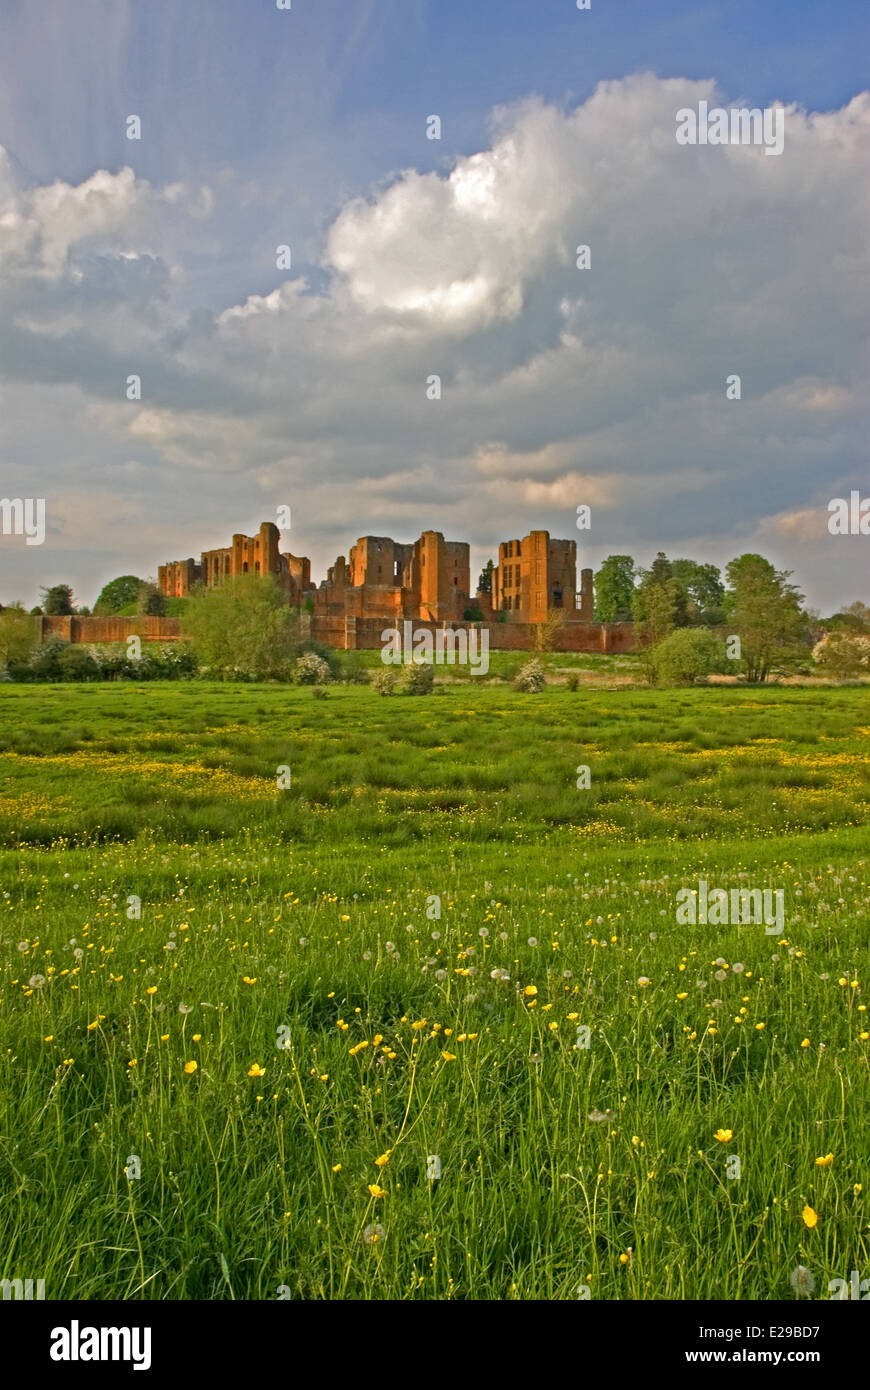 The ruins of Kenilworth Castle in Warwickshire can be seen from across farmland that once formed part of the moat. - Stock Image